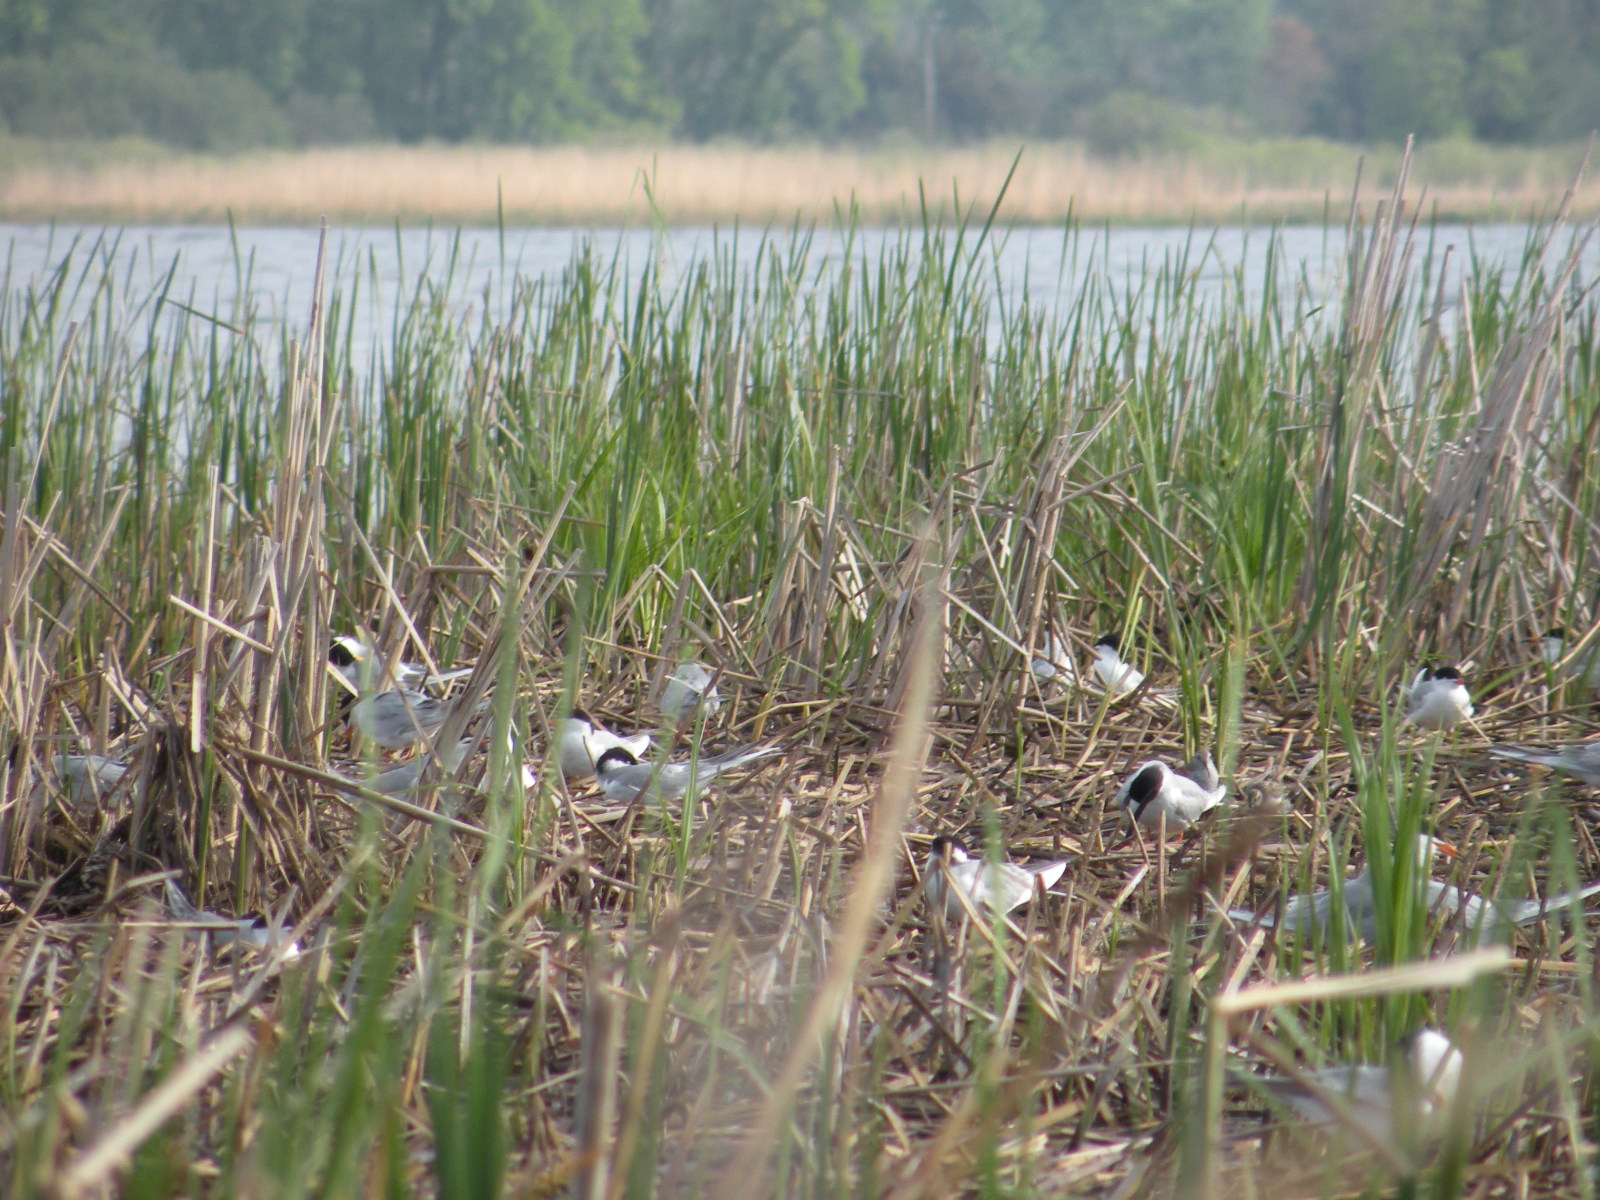 Numerous Forster's terns mingle in native vegetation in a wetland. Photo by Daryl Christensen